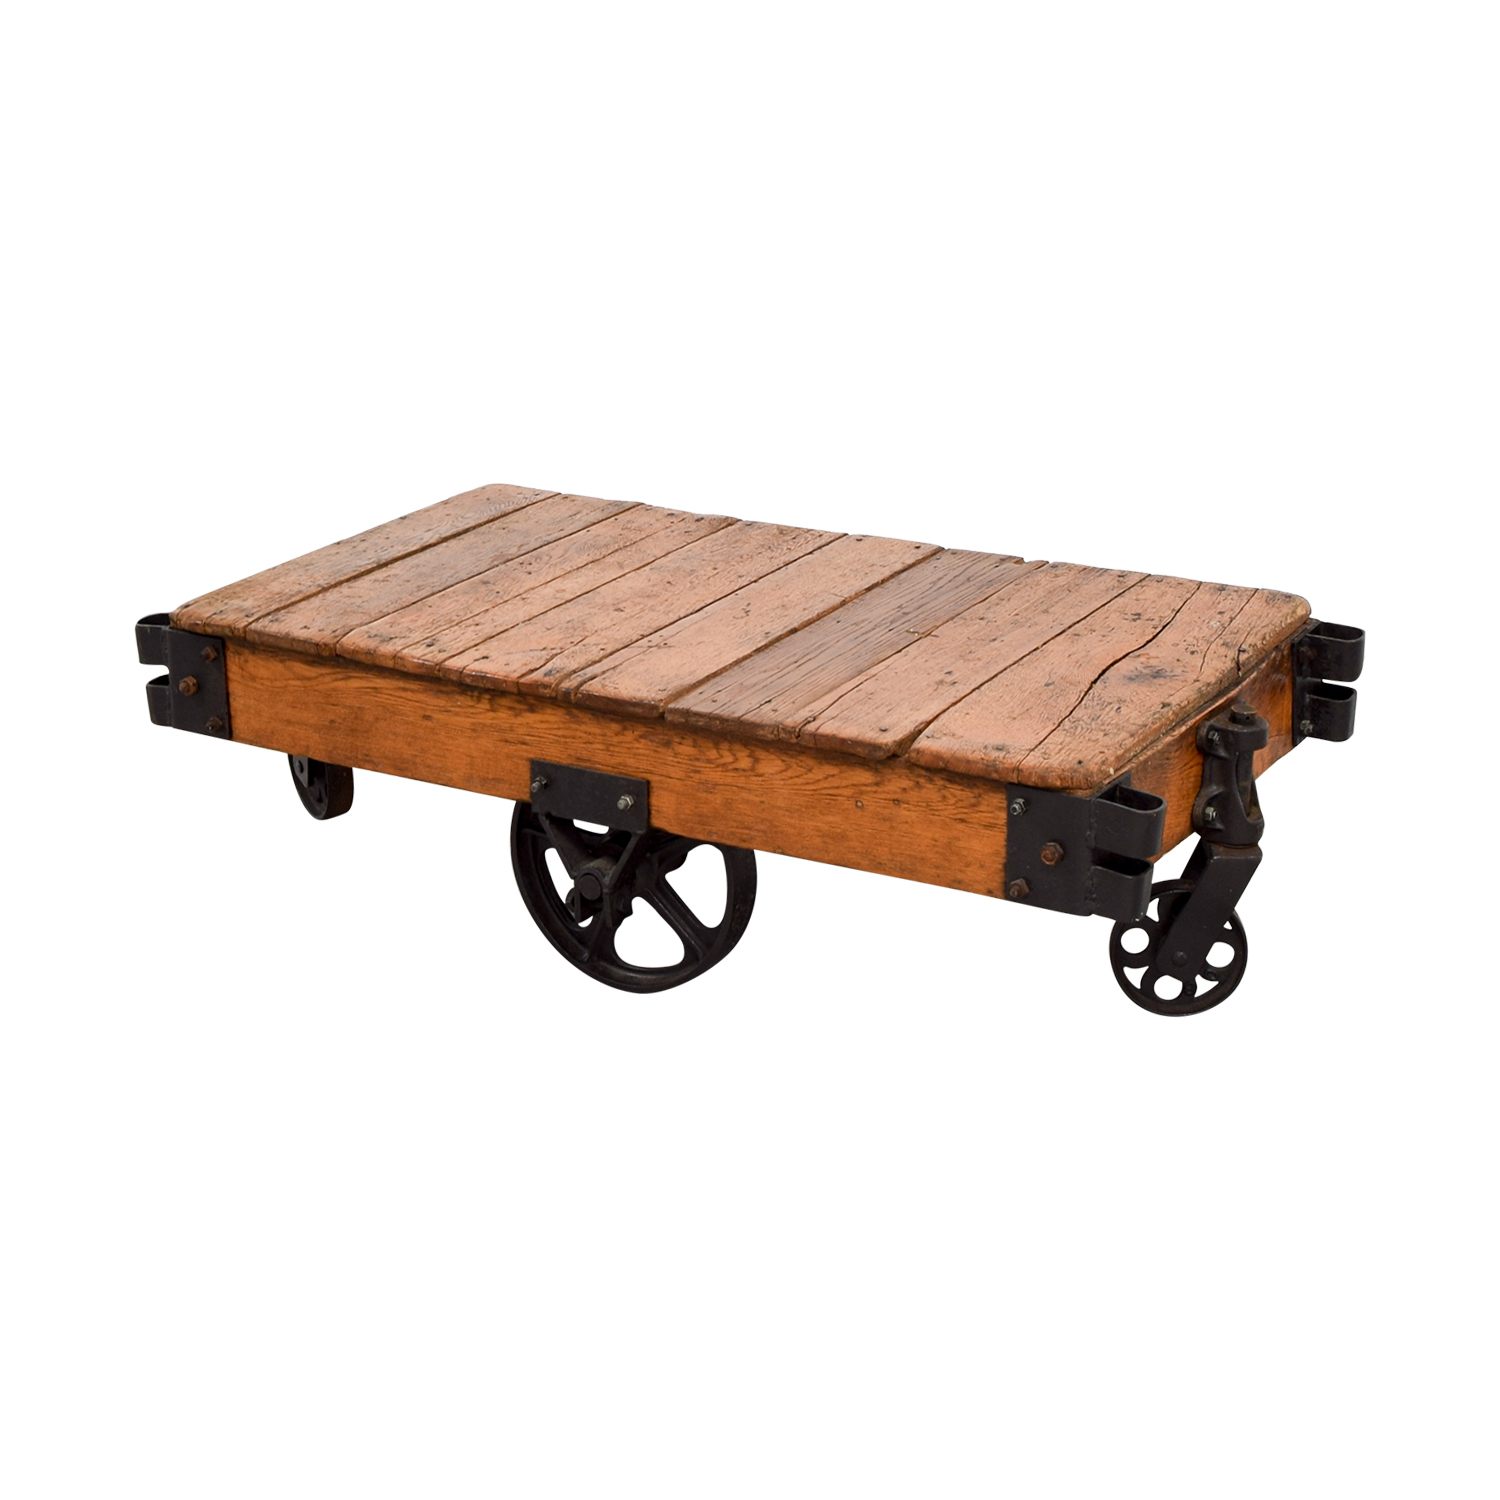 buy Restoration Hardware Rustic Coffee Table with Wheels Restoration Hardware